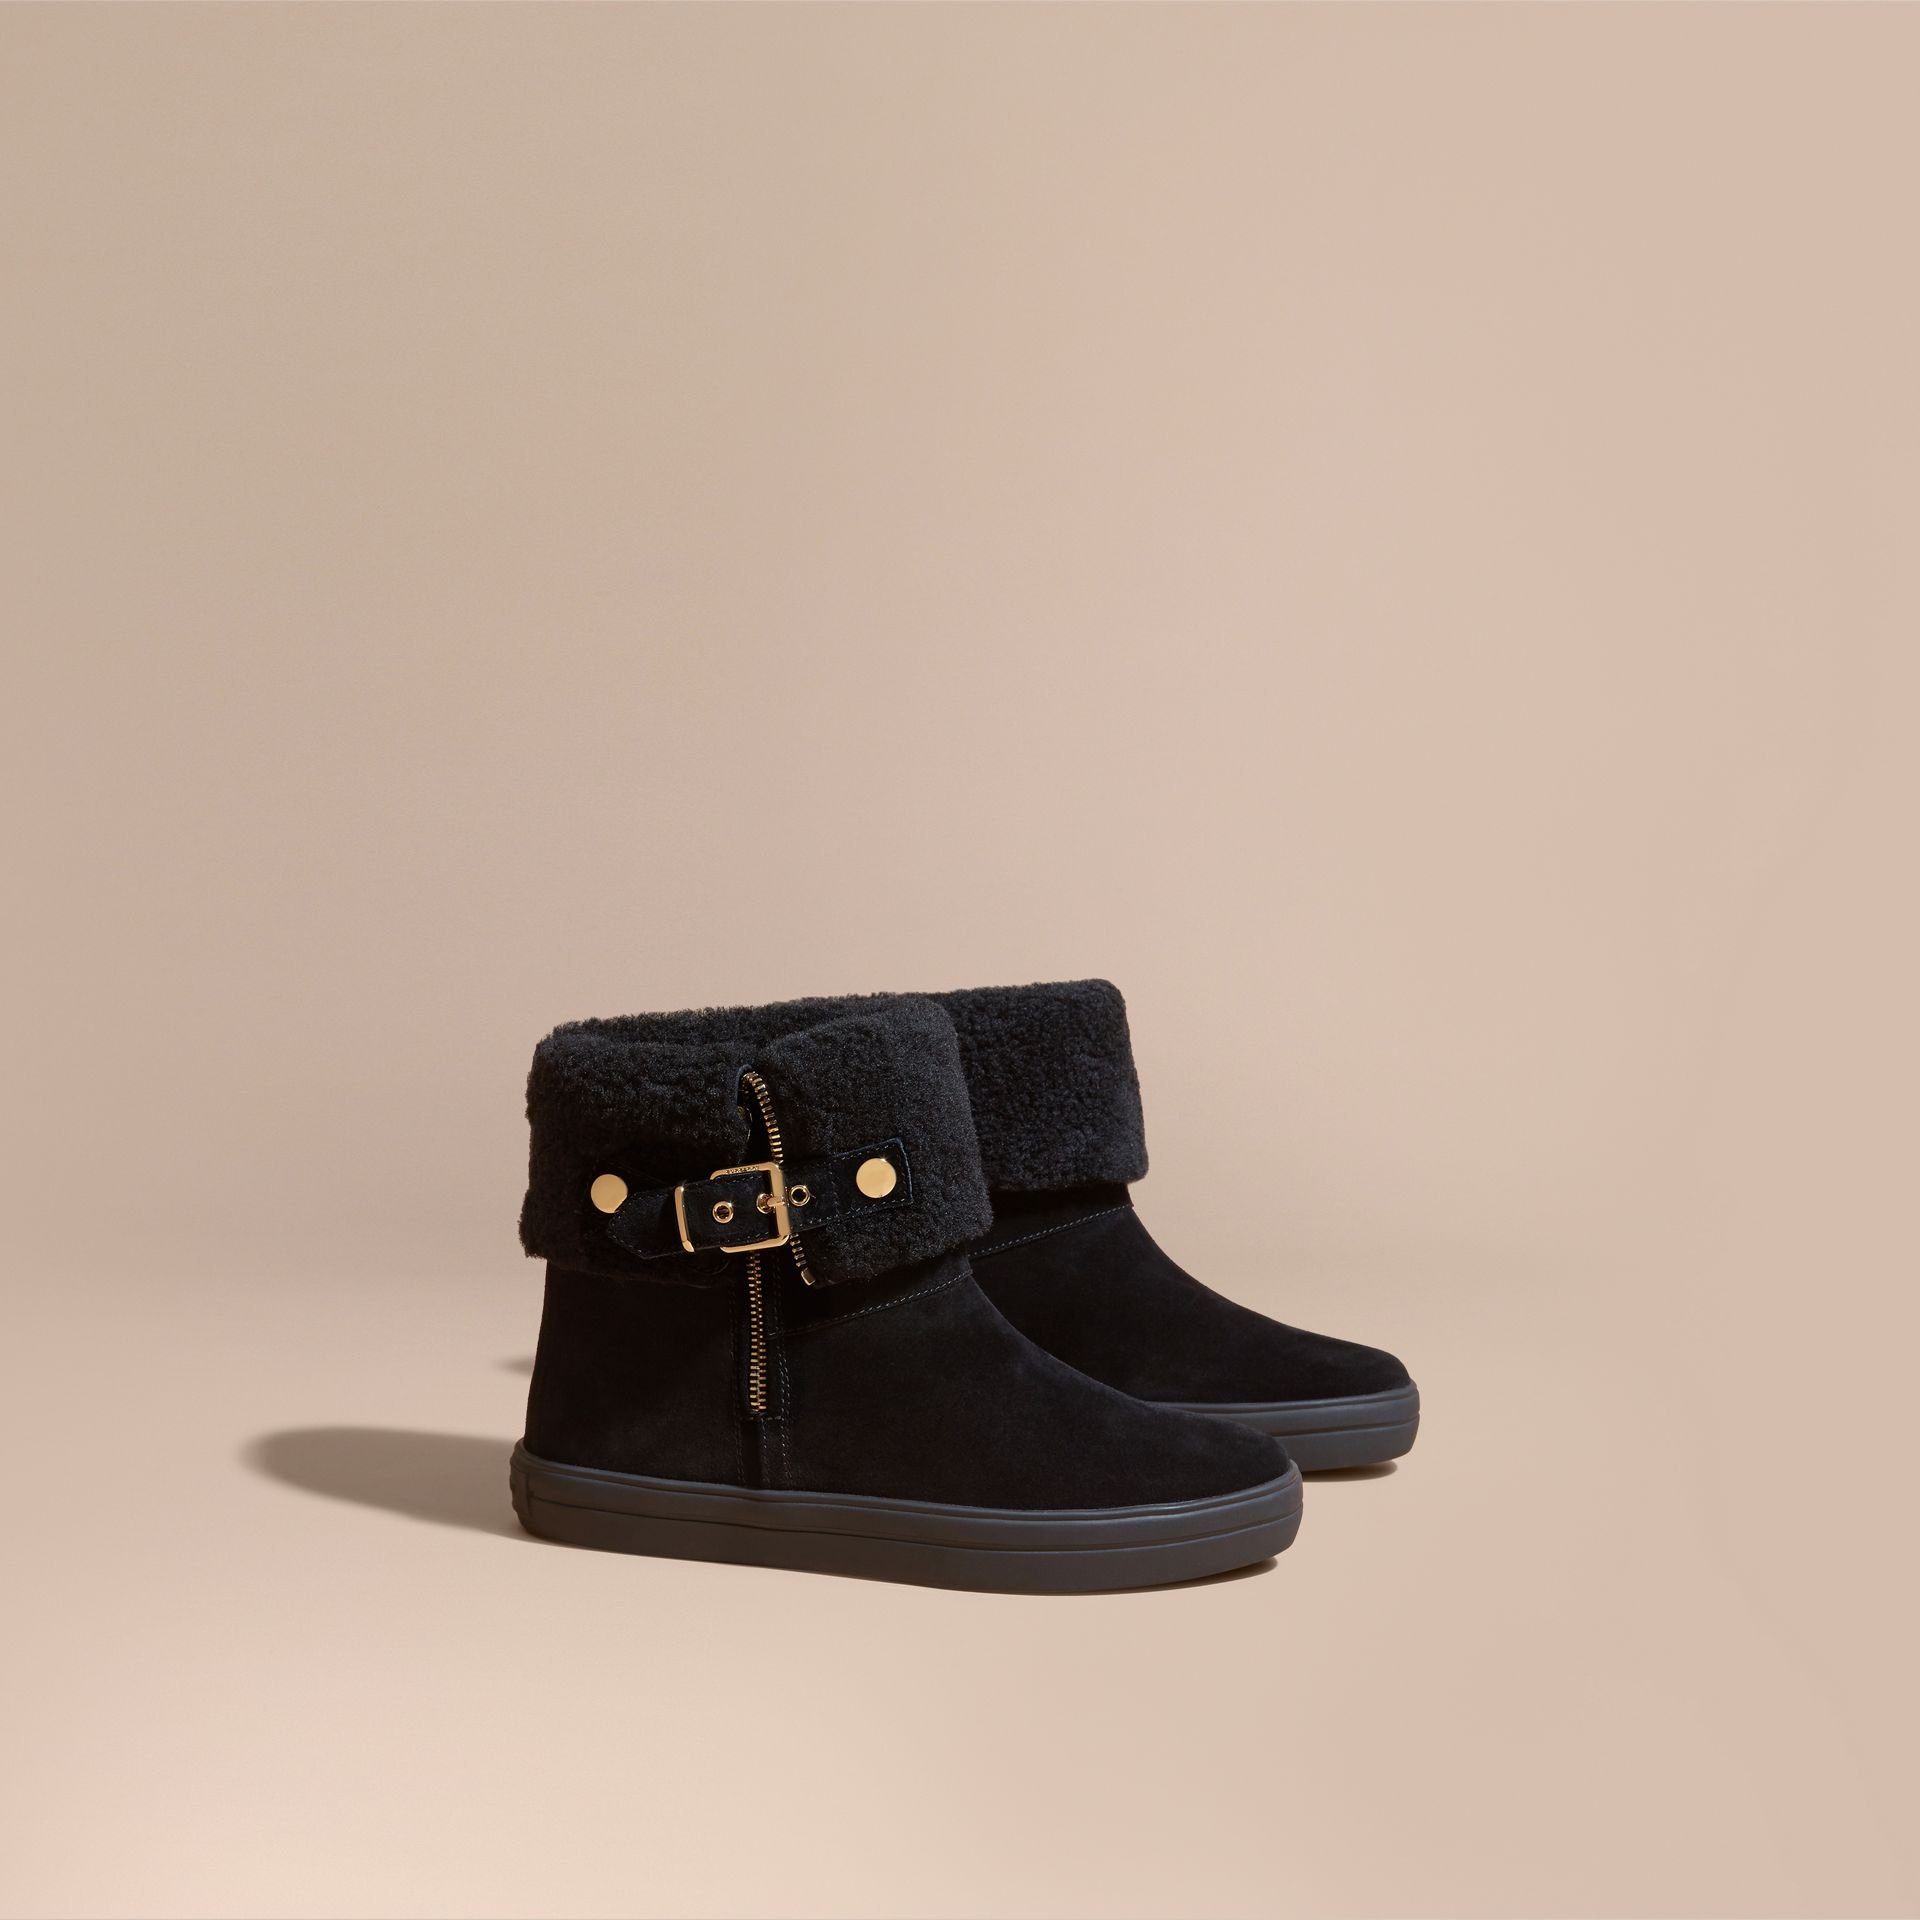 Black Shearling-lined Suede Ankle Boots Black - gallery image 1